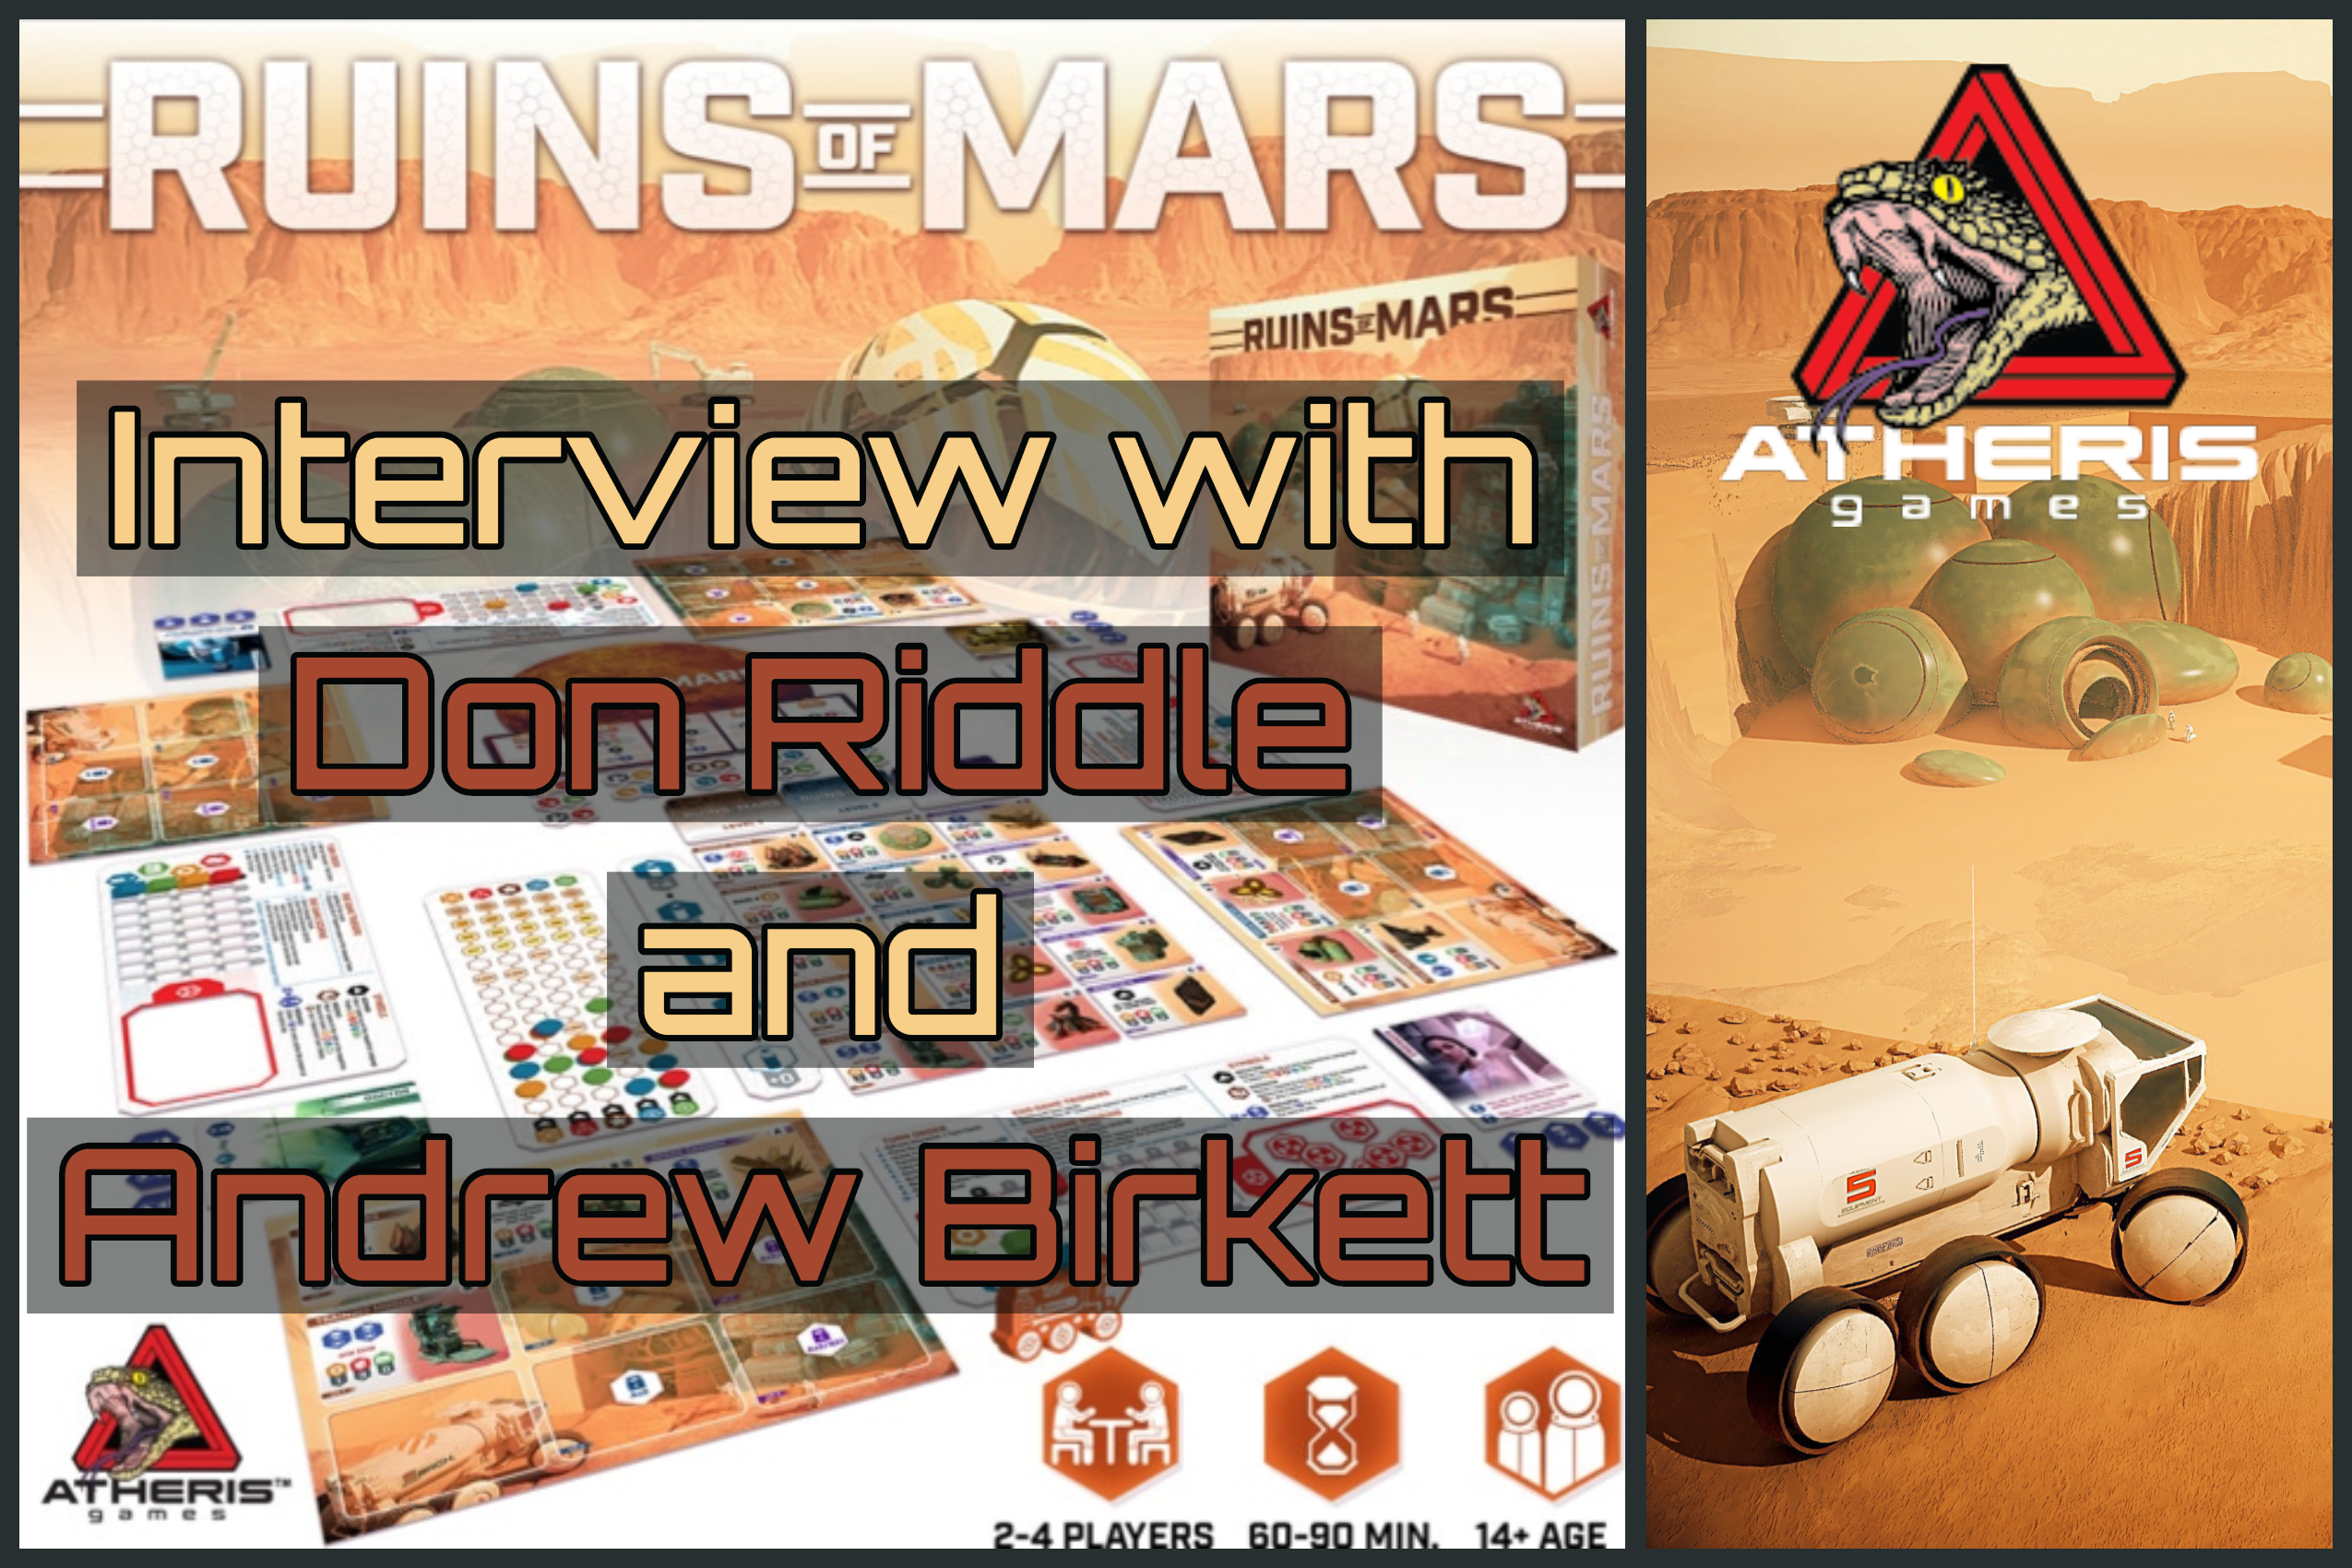 Ruins of Mars - Interview with Don Riddle and Andrew Birkett